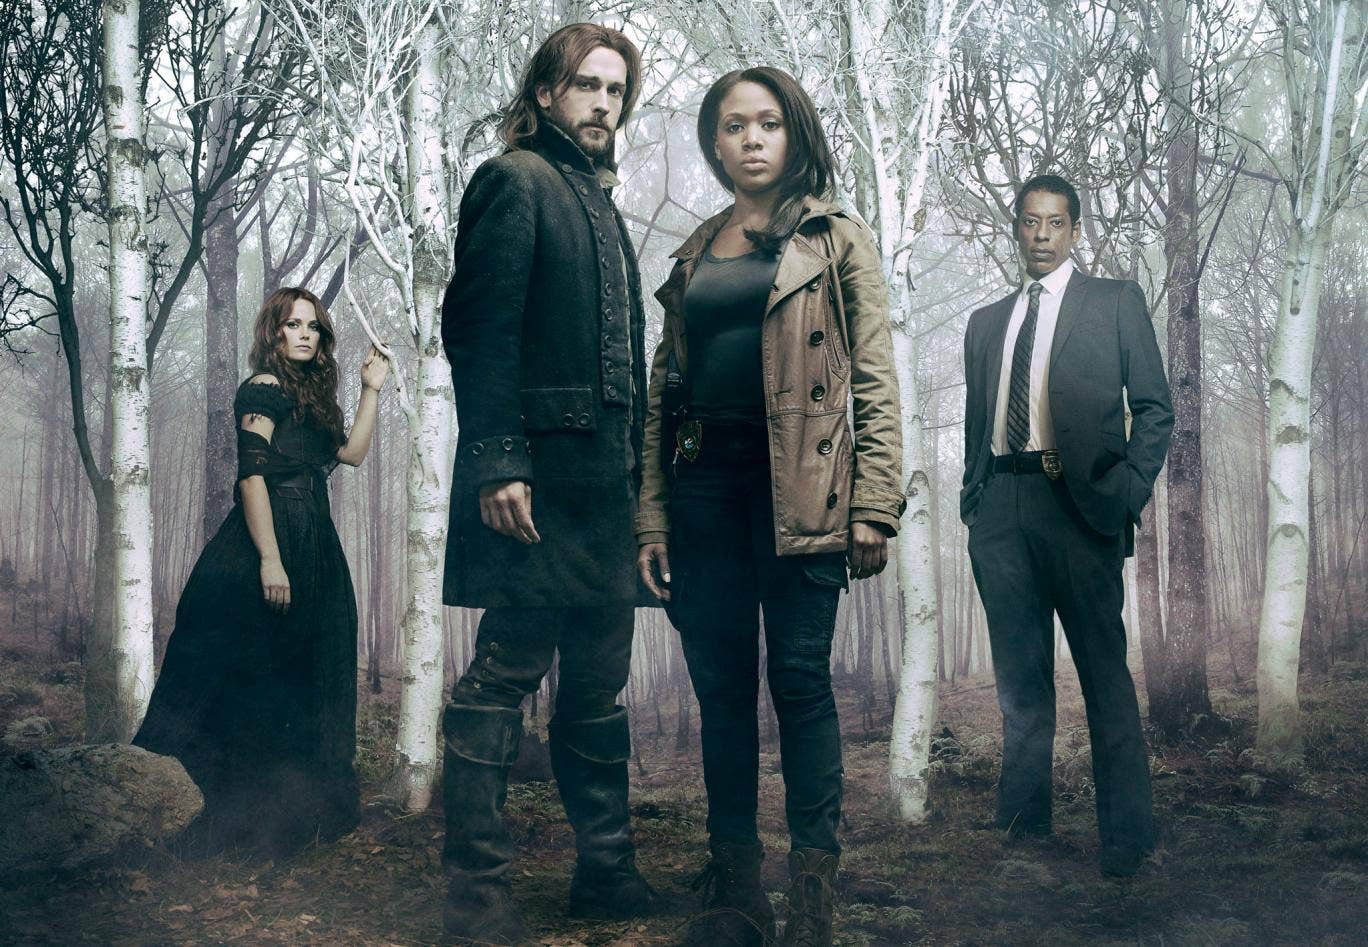 Universal Channel's Sleepy Hollow is closer to Tim Burton's 1999 feature film than Washington Irving's 1820 short story